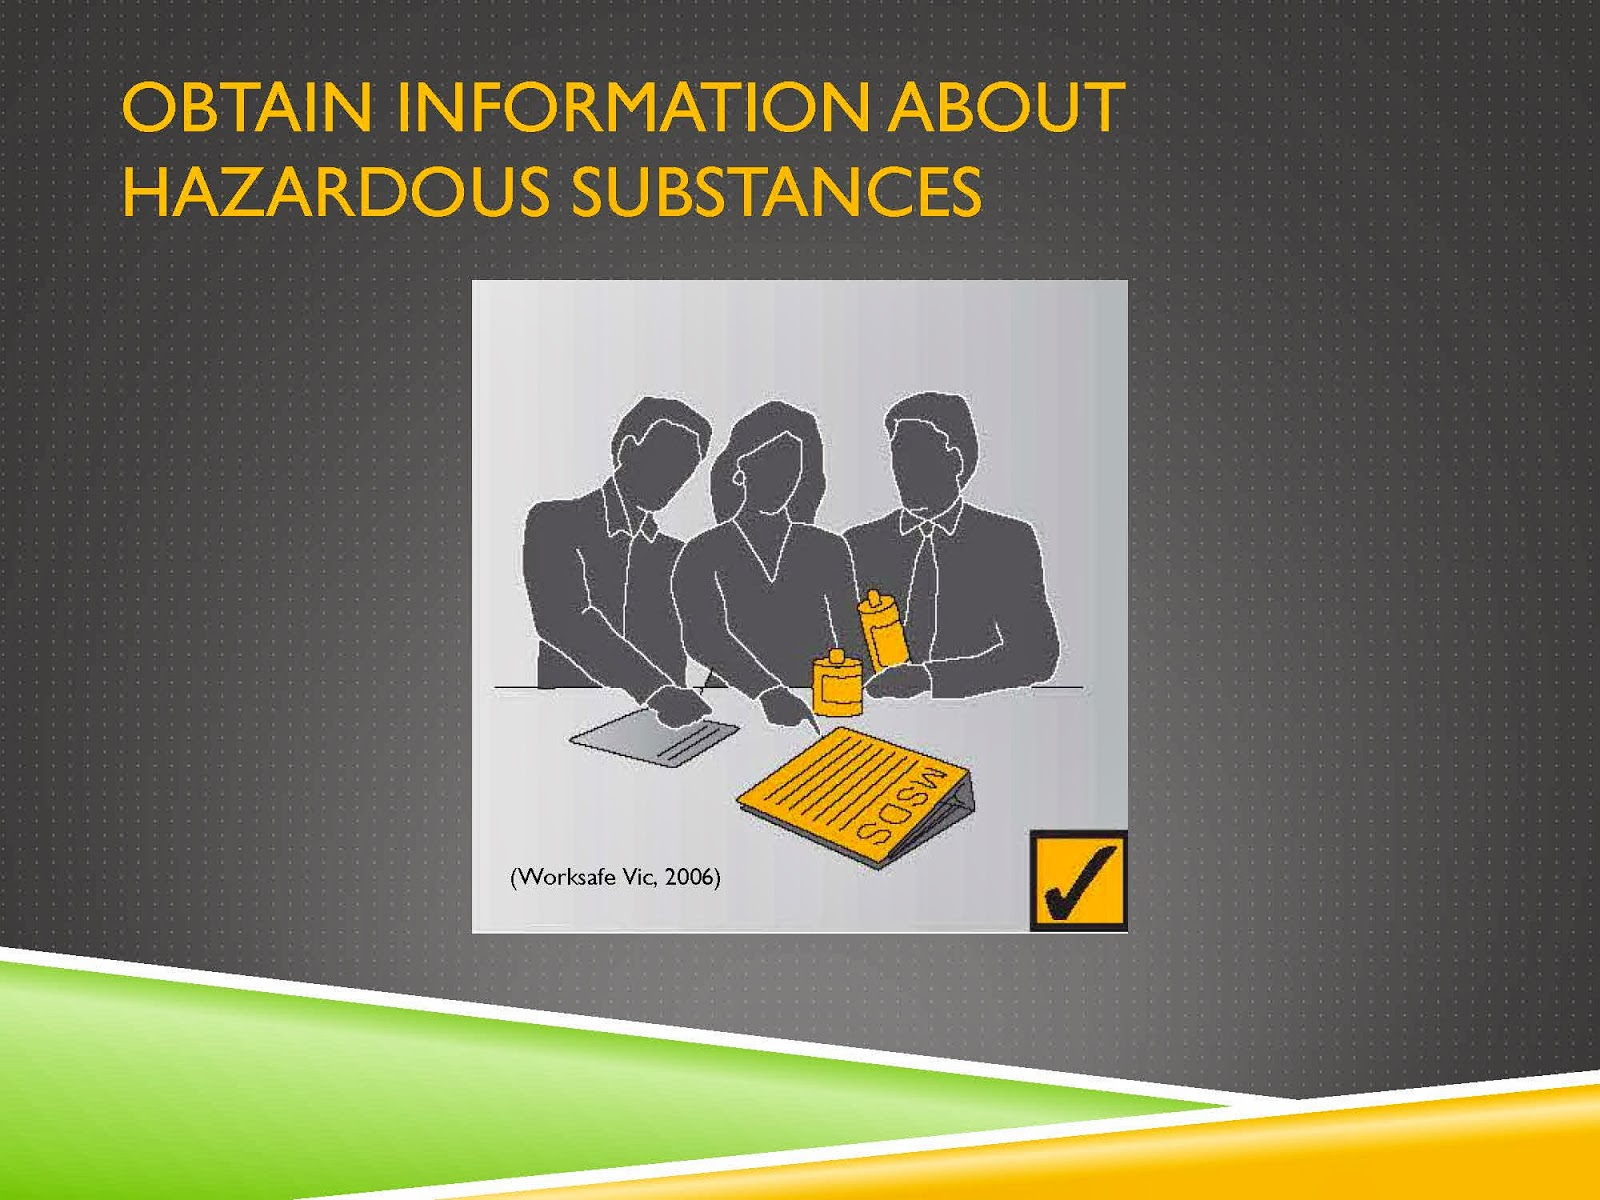 RESEARCH HAZARDOUS SUBSTANCES